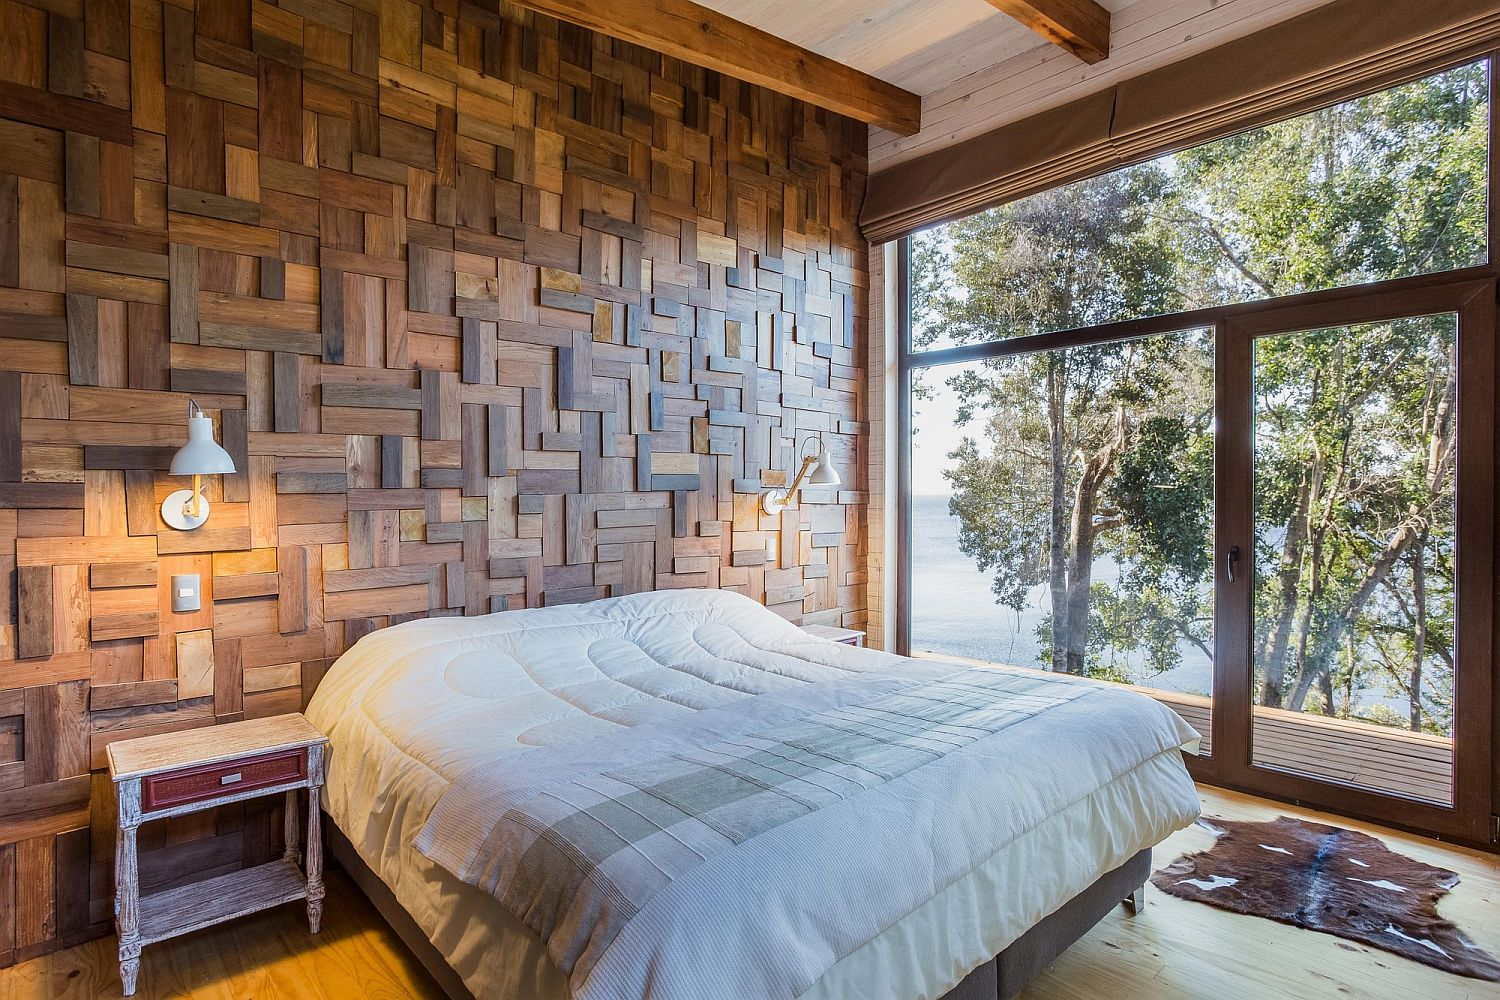 Exquisite-woodne-accent-wall-for-the-bedroom-with-3D-pattern